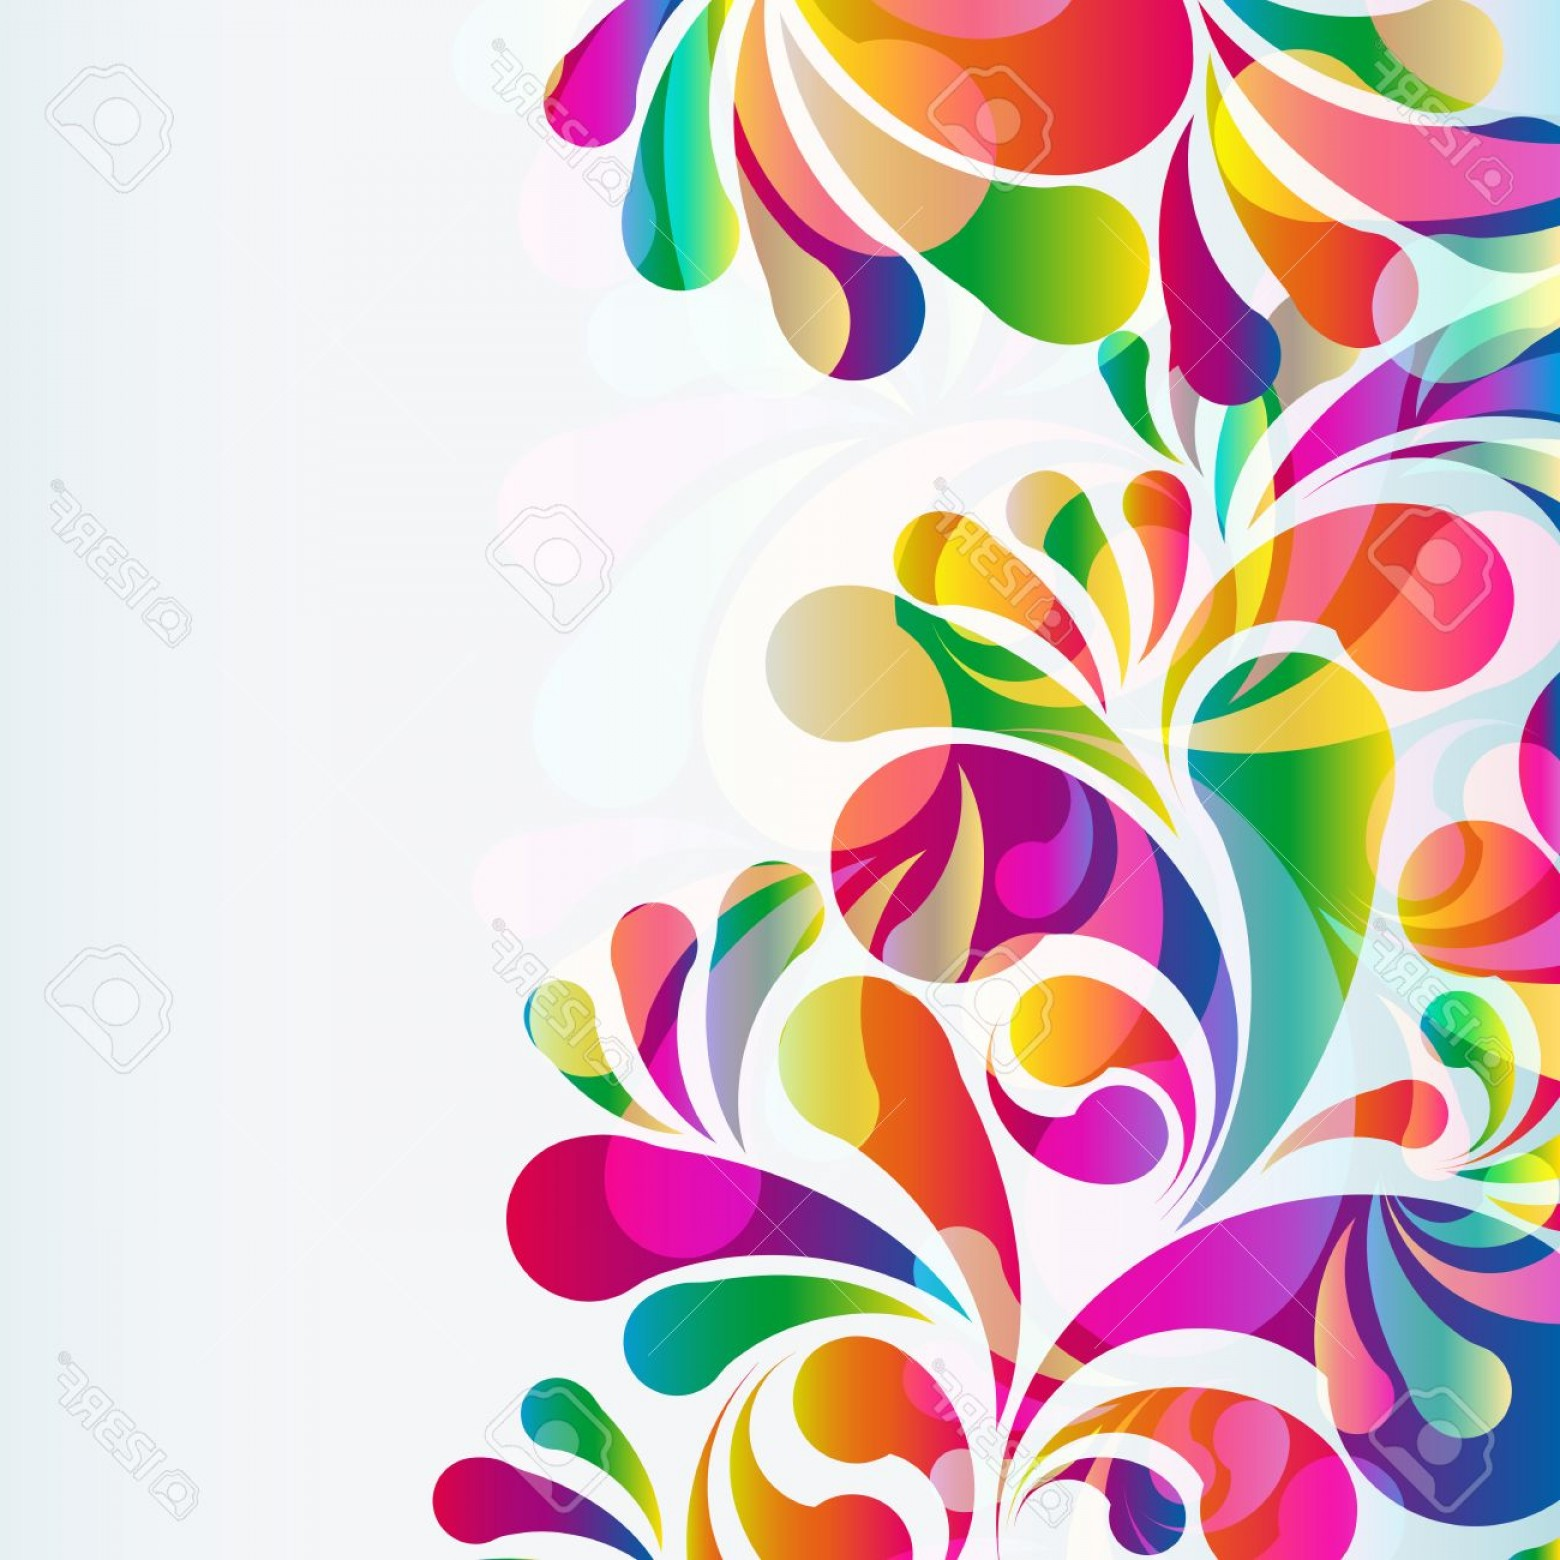 Backgroung Vector: Photostock Vector Abstract Colorful Arc Drop Background Vector